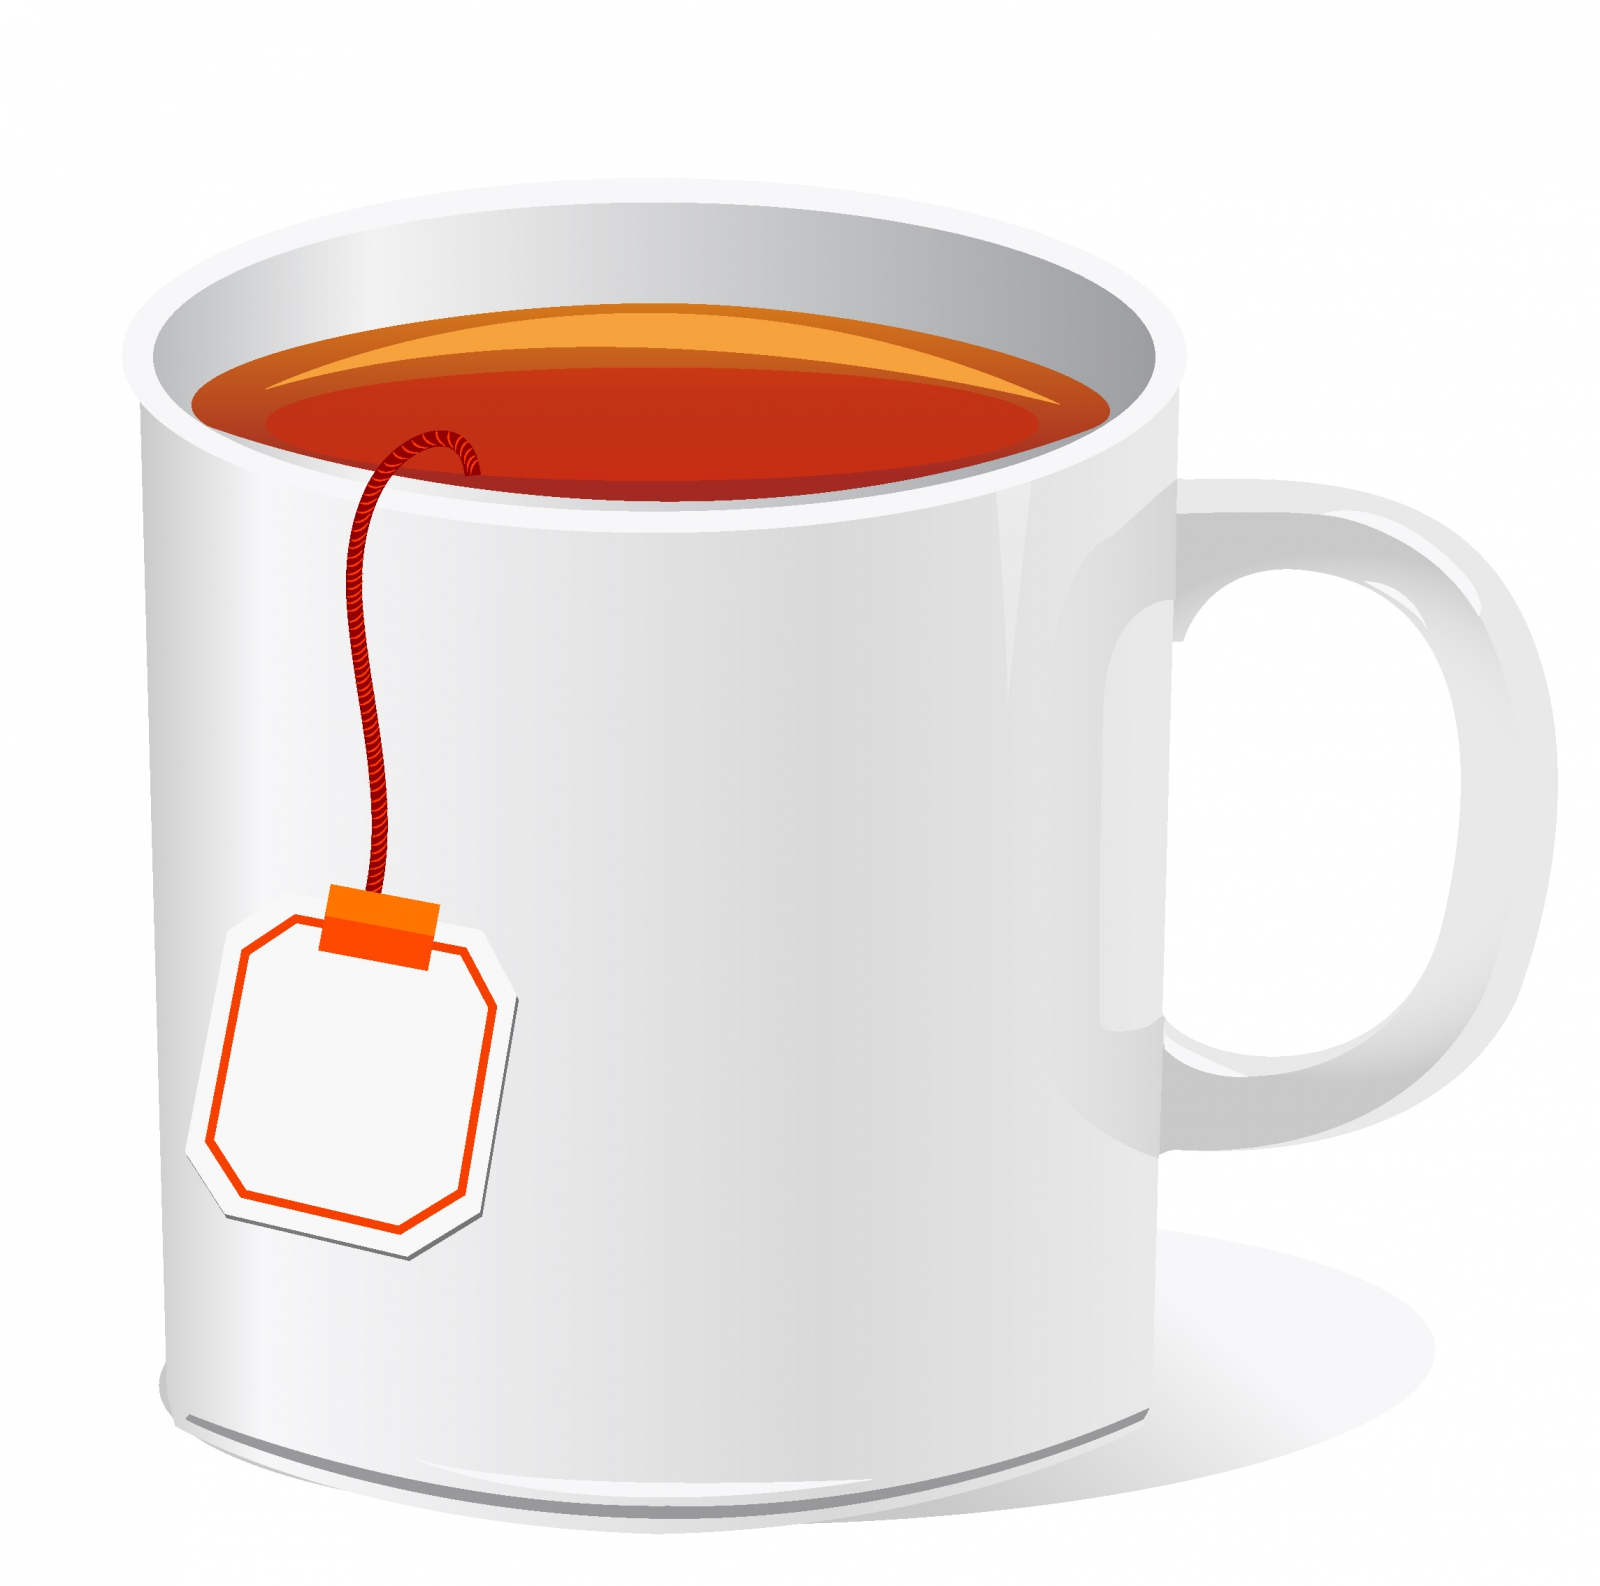 1600x1586 Tea Cup With Teabag Free Vector 4vector